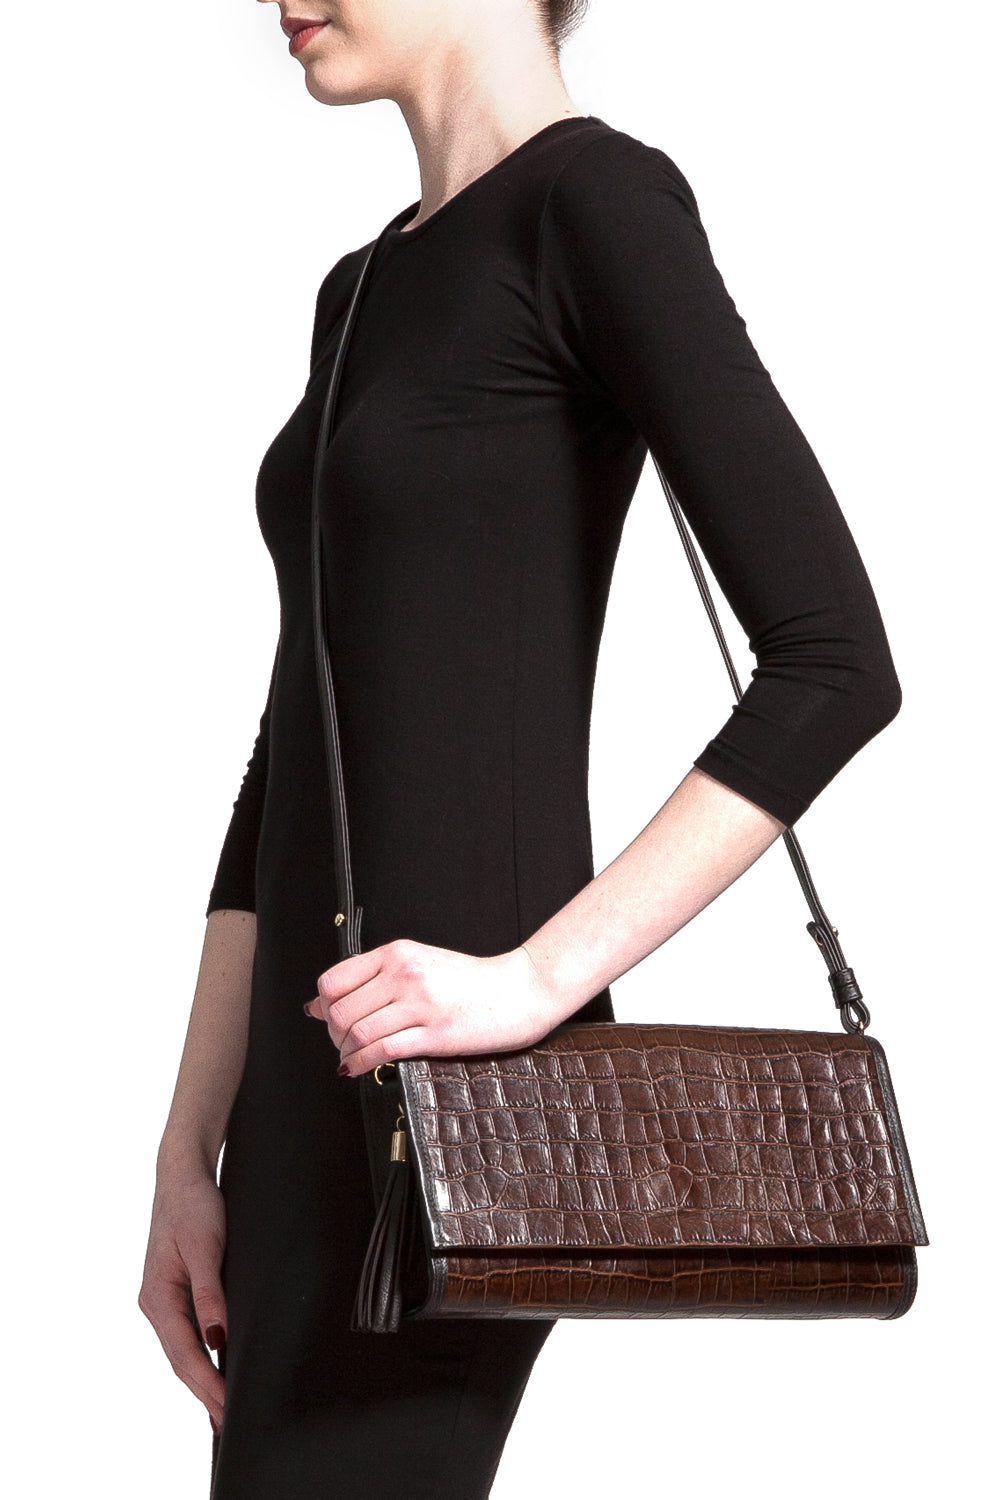 Cocoa Brown, Croc-Effect Leather 'Cara' Envelope Clutch | Mel Boteri | Model Cross-Body View